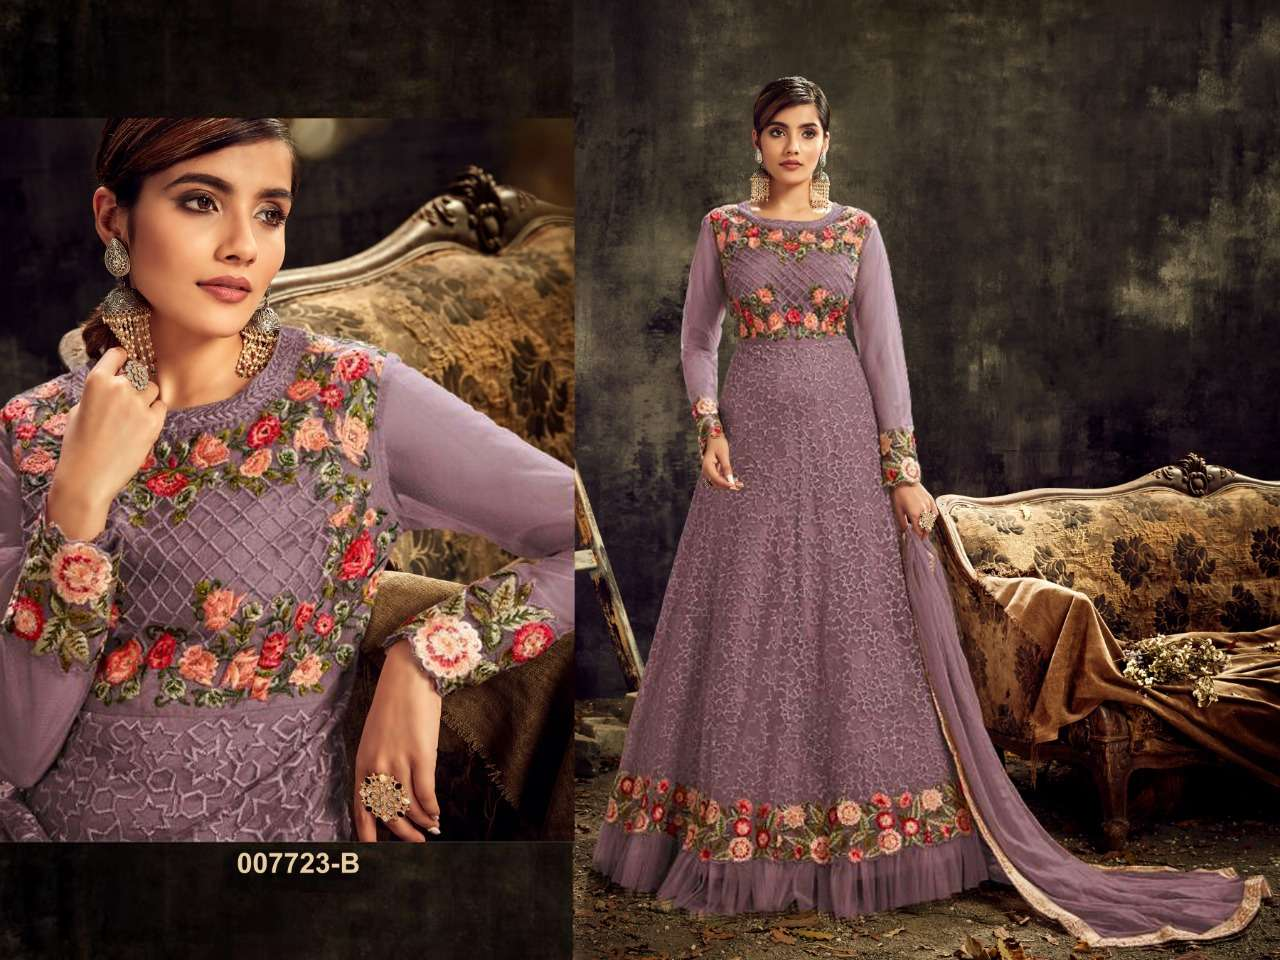 HOTLADYY 7723 05 DESIGNER HEAVY NET EMBROIDERY WORK PARTYWEAR UNSTITCHED GOWN WITH DUPATTA IN SINGLES